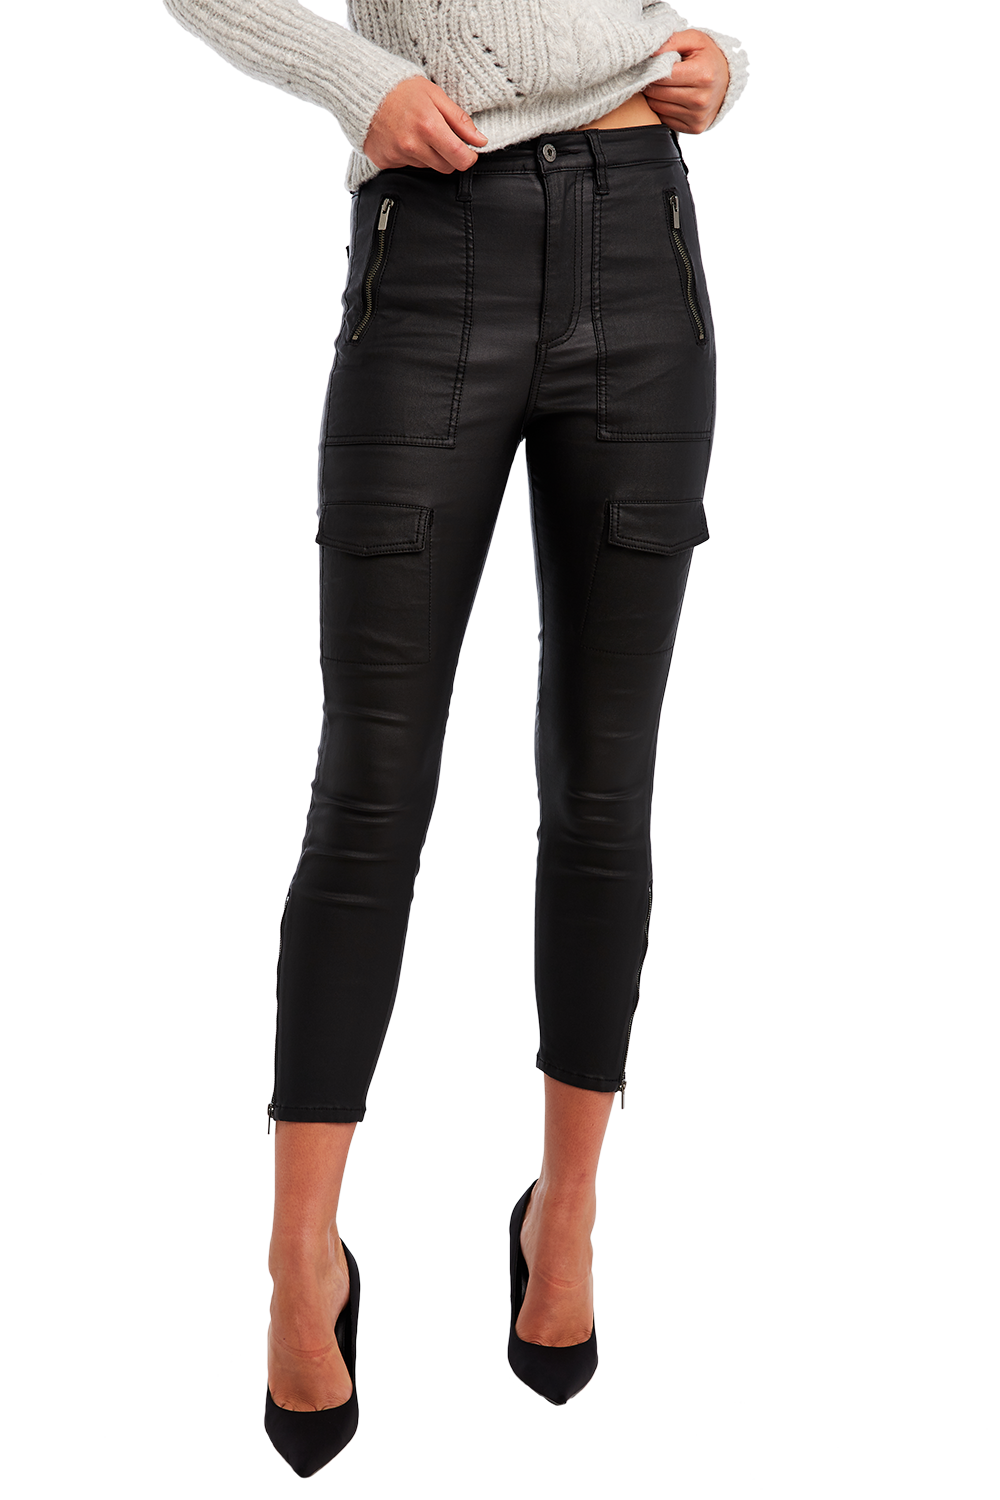 SIENNA COATED BIKER JEAN in colour CAVIAR